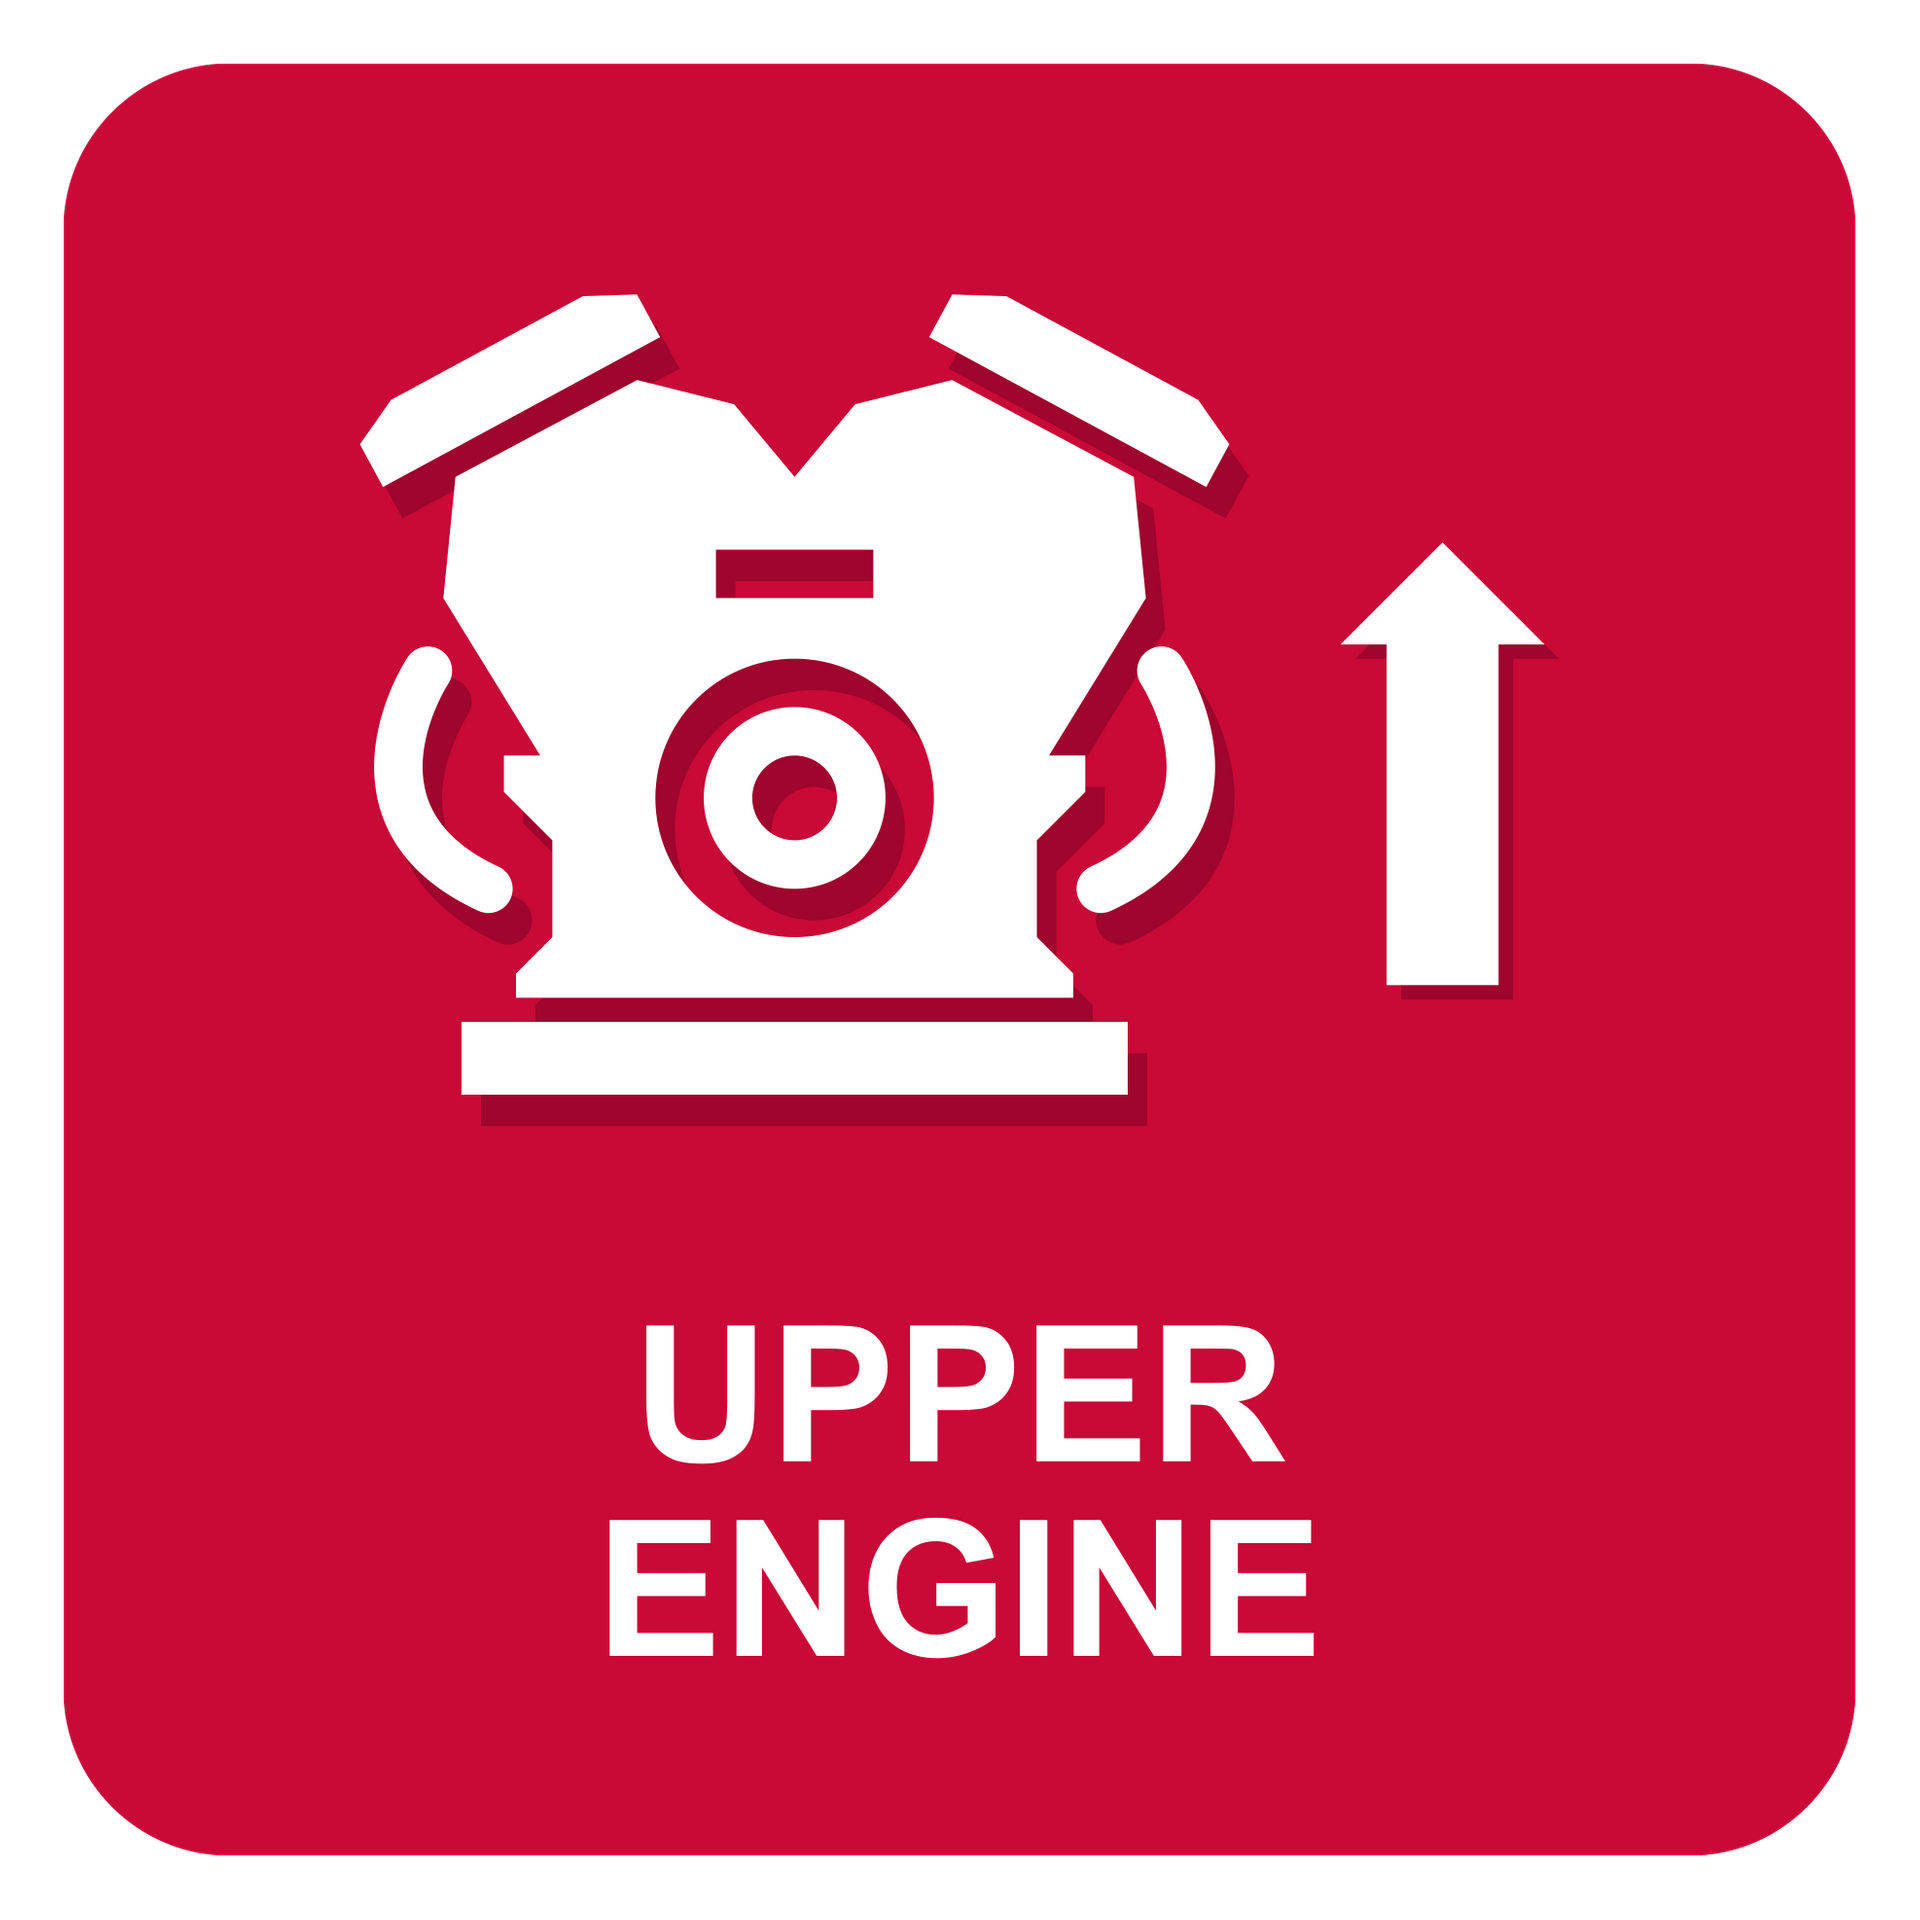 UPPER ENGINE